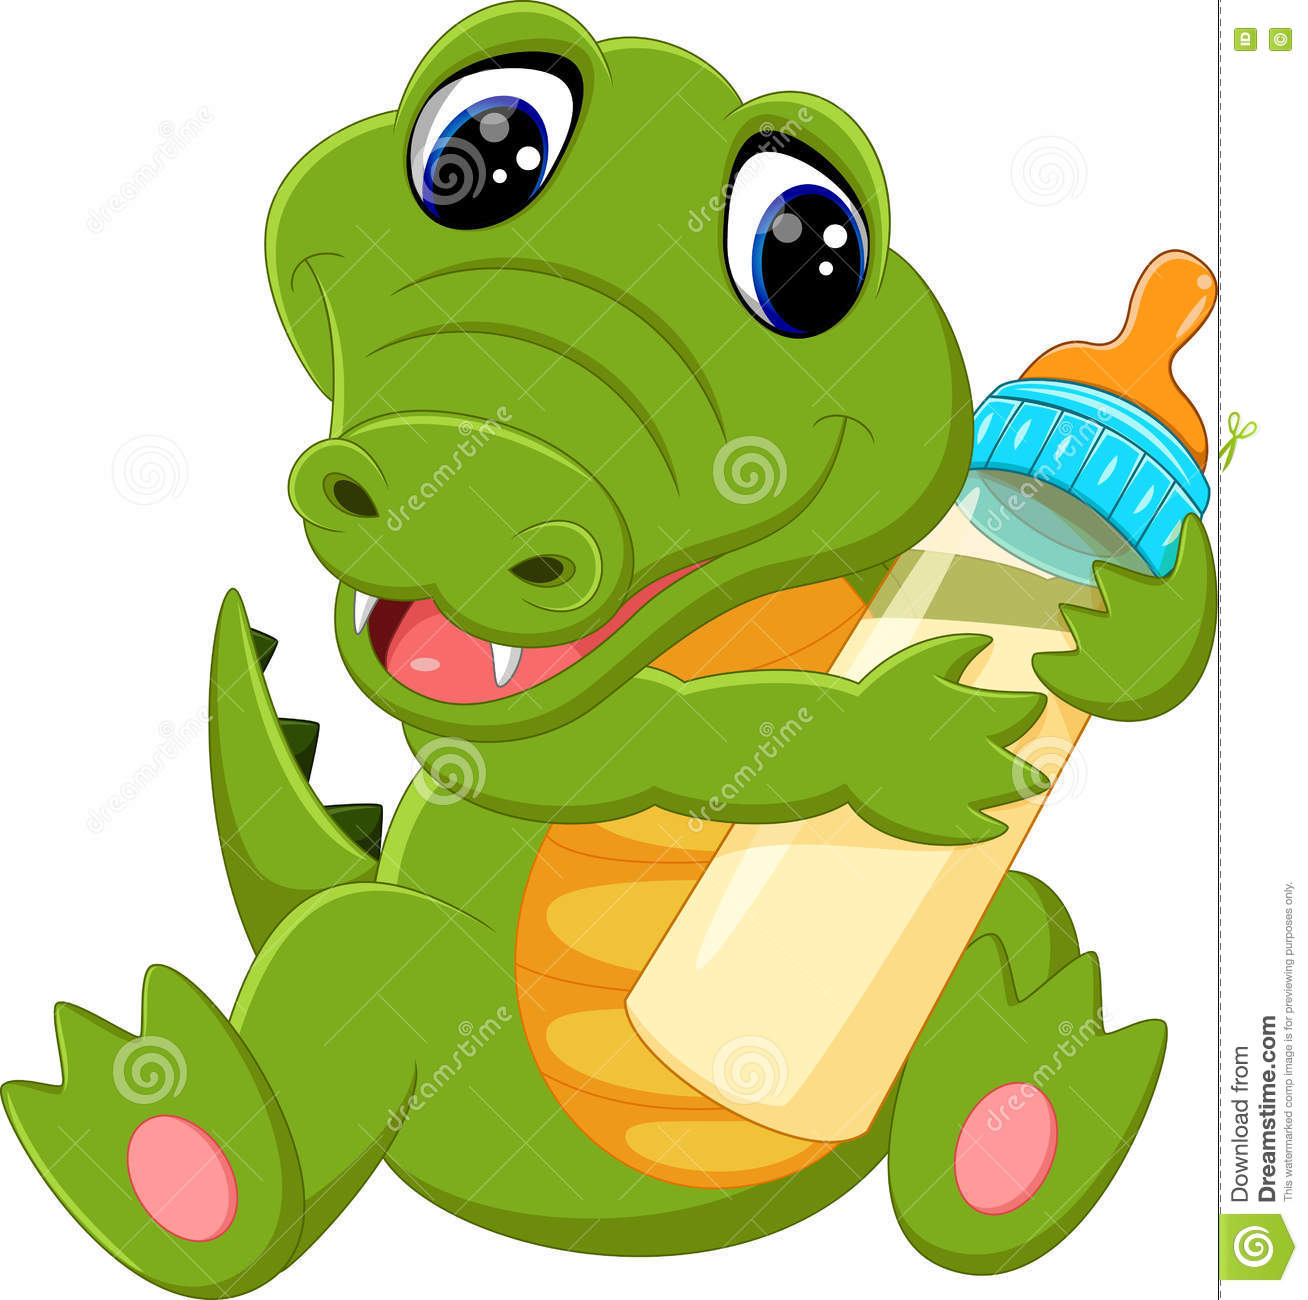 Cute crocodile cartoon stock vector. Illustration of comic ...